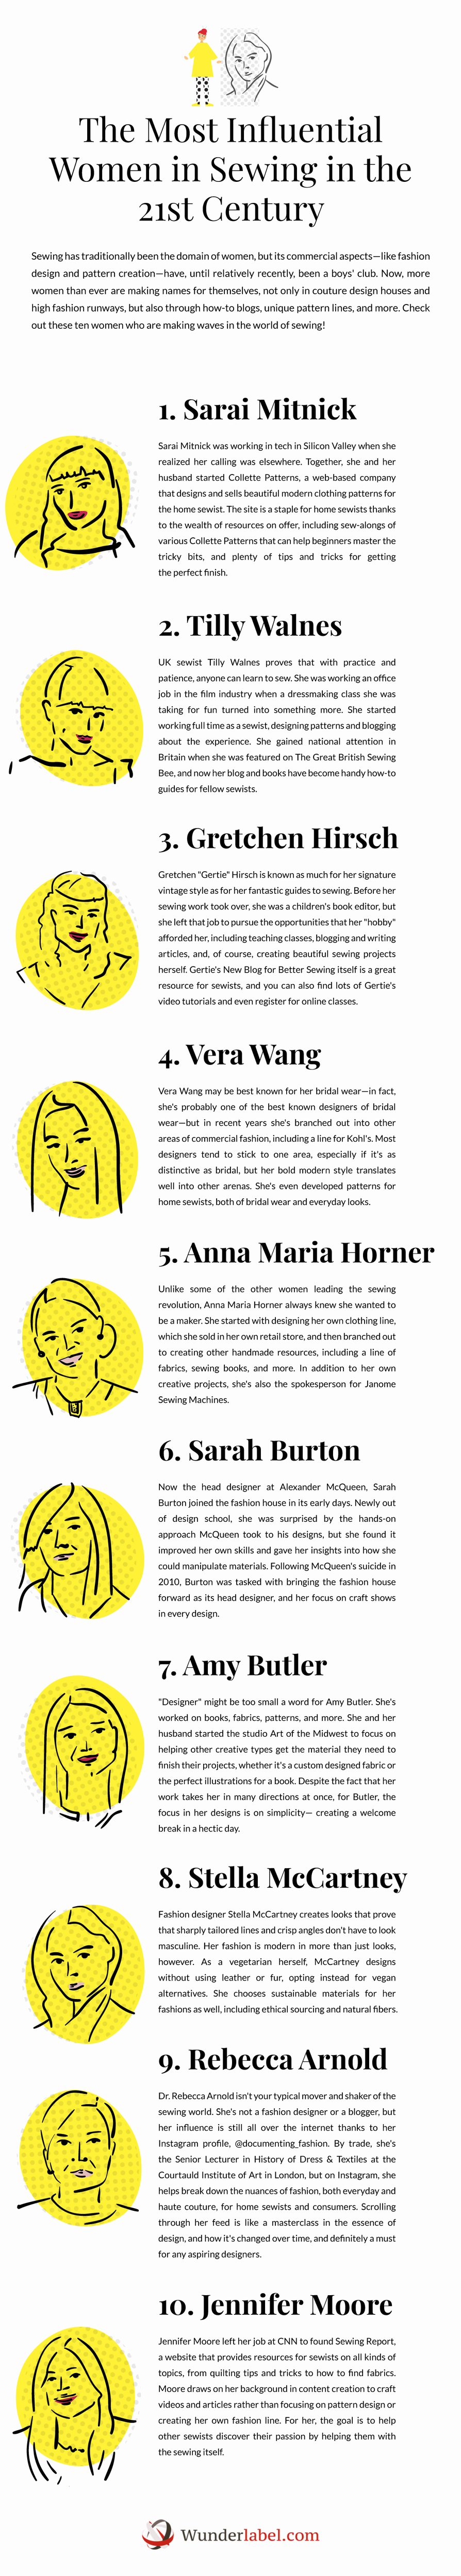 The Most Influential Women in Sewing in the 21st Century